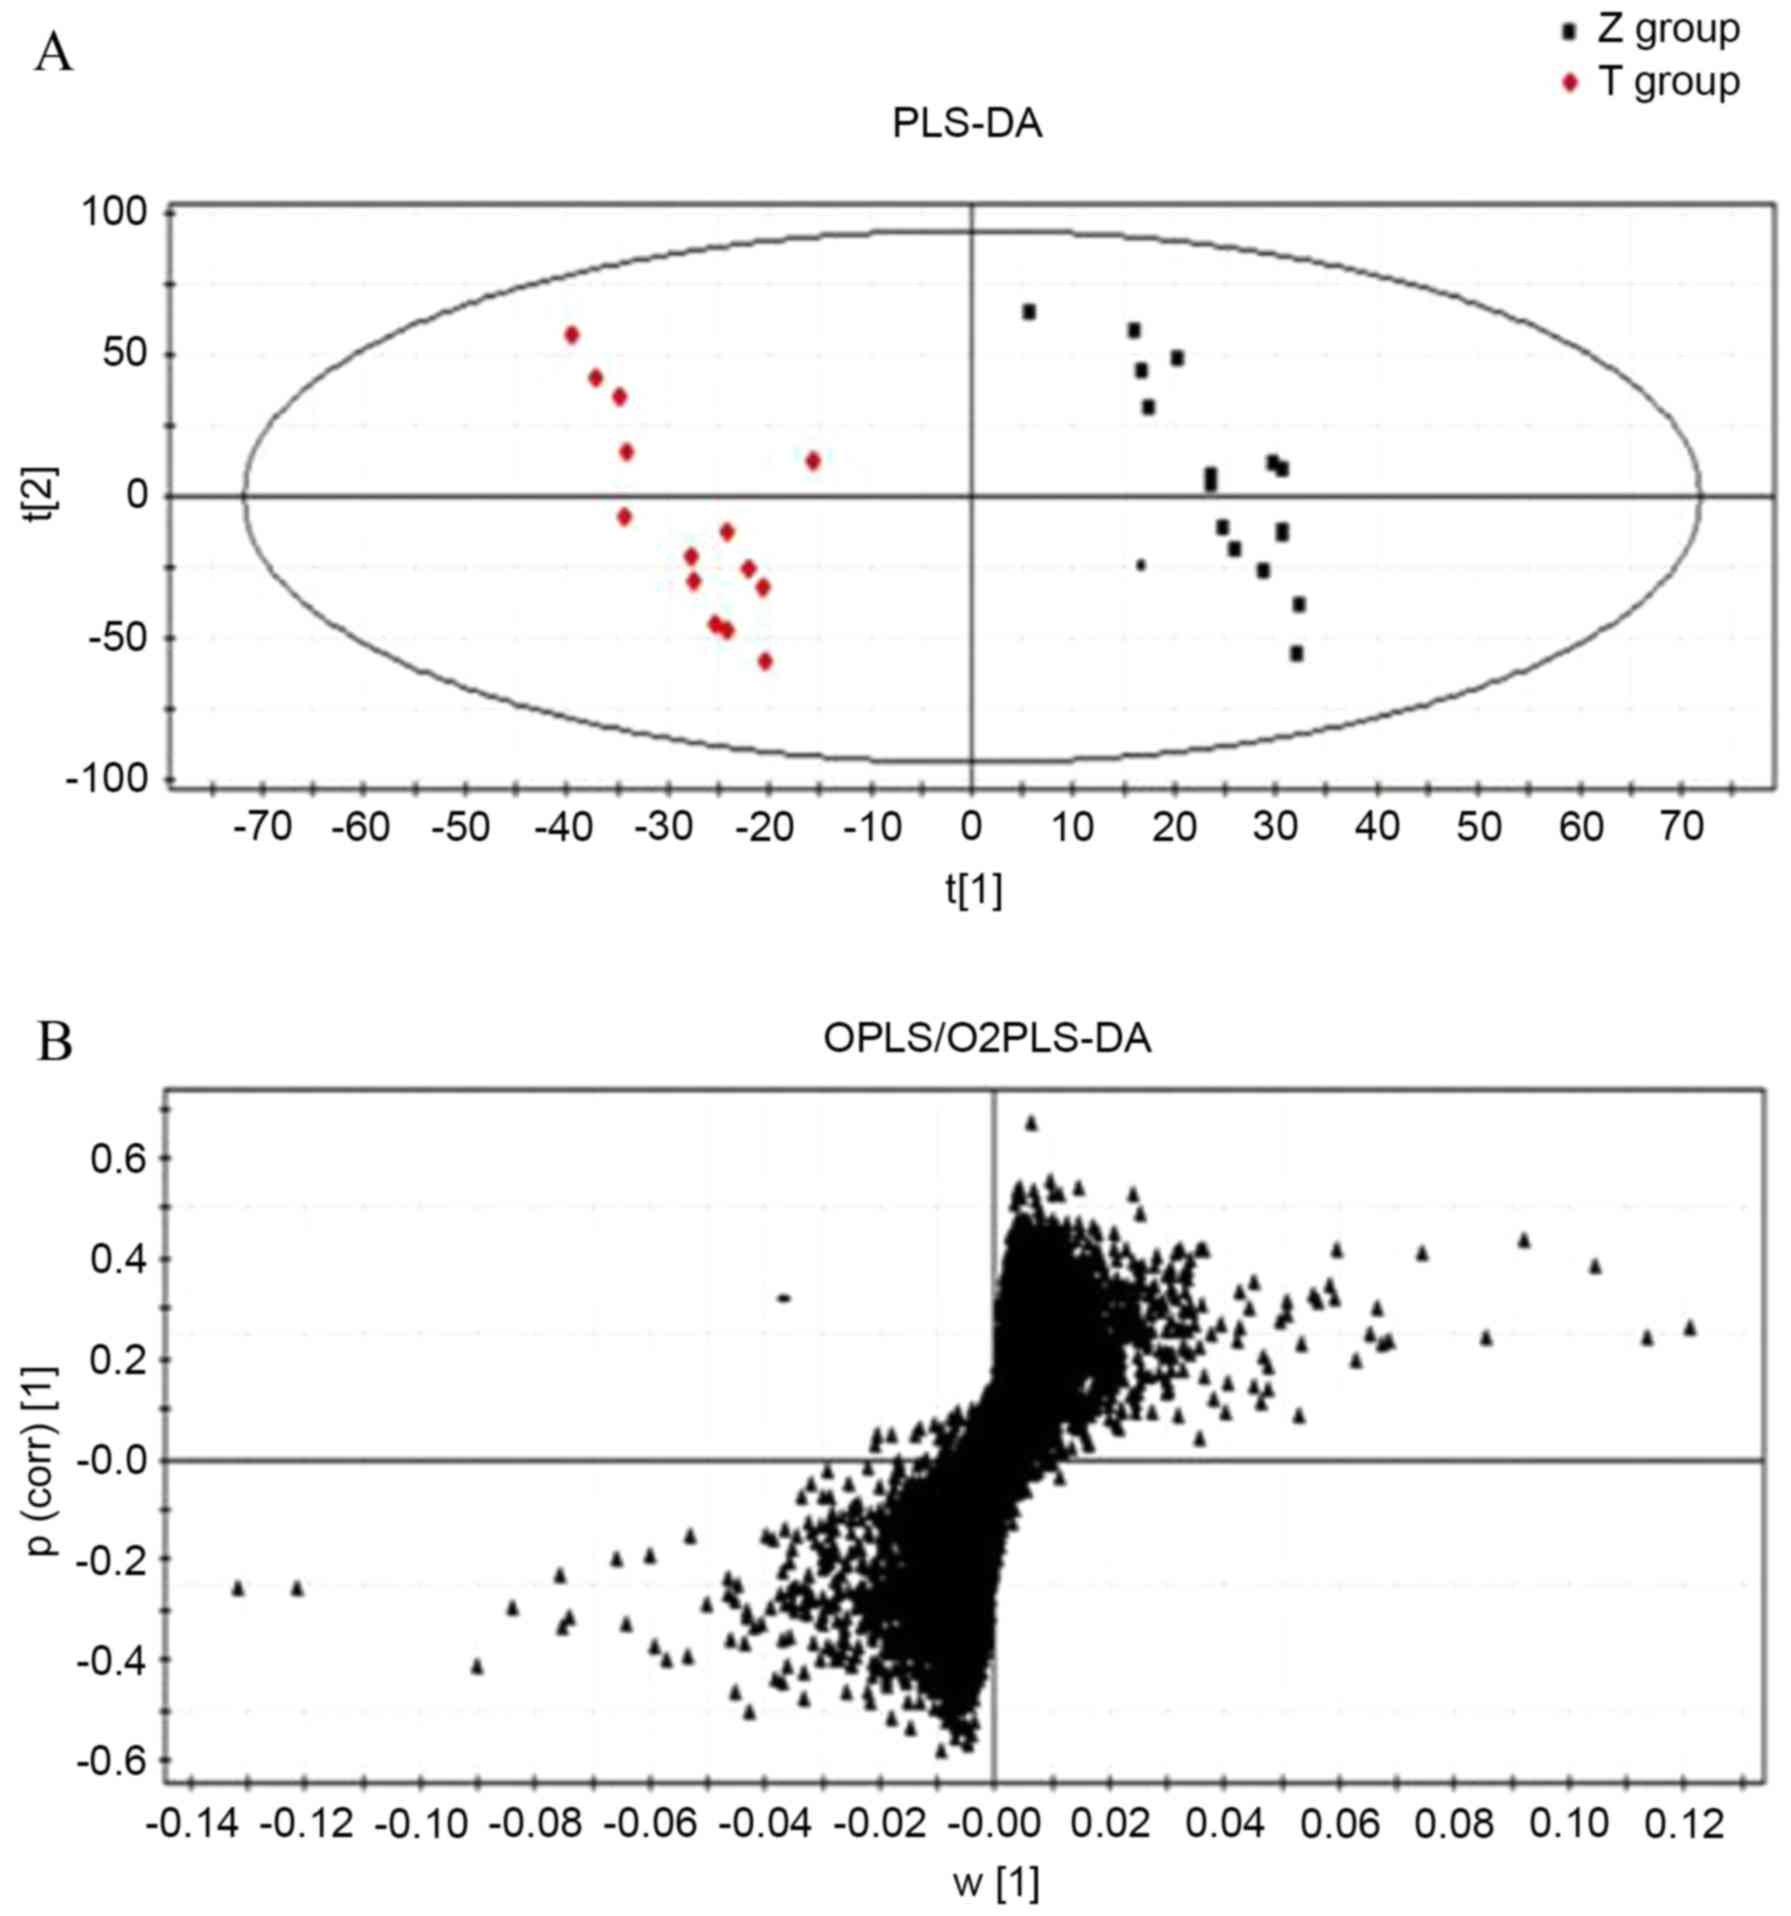 Metabolomics Study On Primary Dysmenorrhea Patients During The Ym 50 Wiring Schematic Figure 2 Multivariate Statistical Analysis A Pls Da Model Of Ultra Performance Liquid Chromatography Coupled With Quadrupole Time Flight Mass